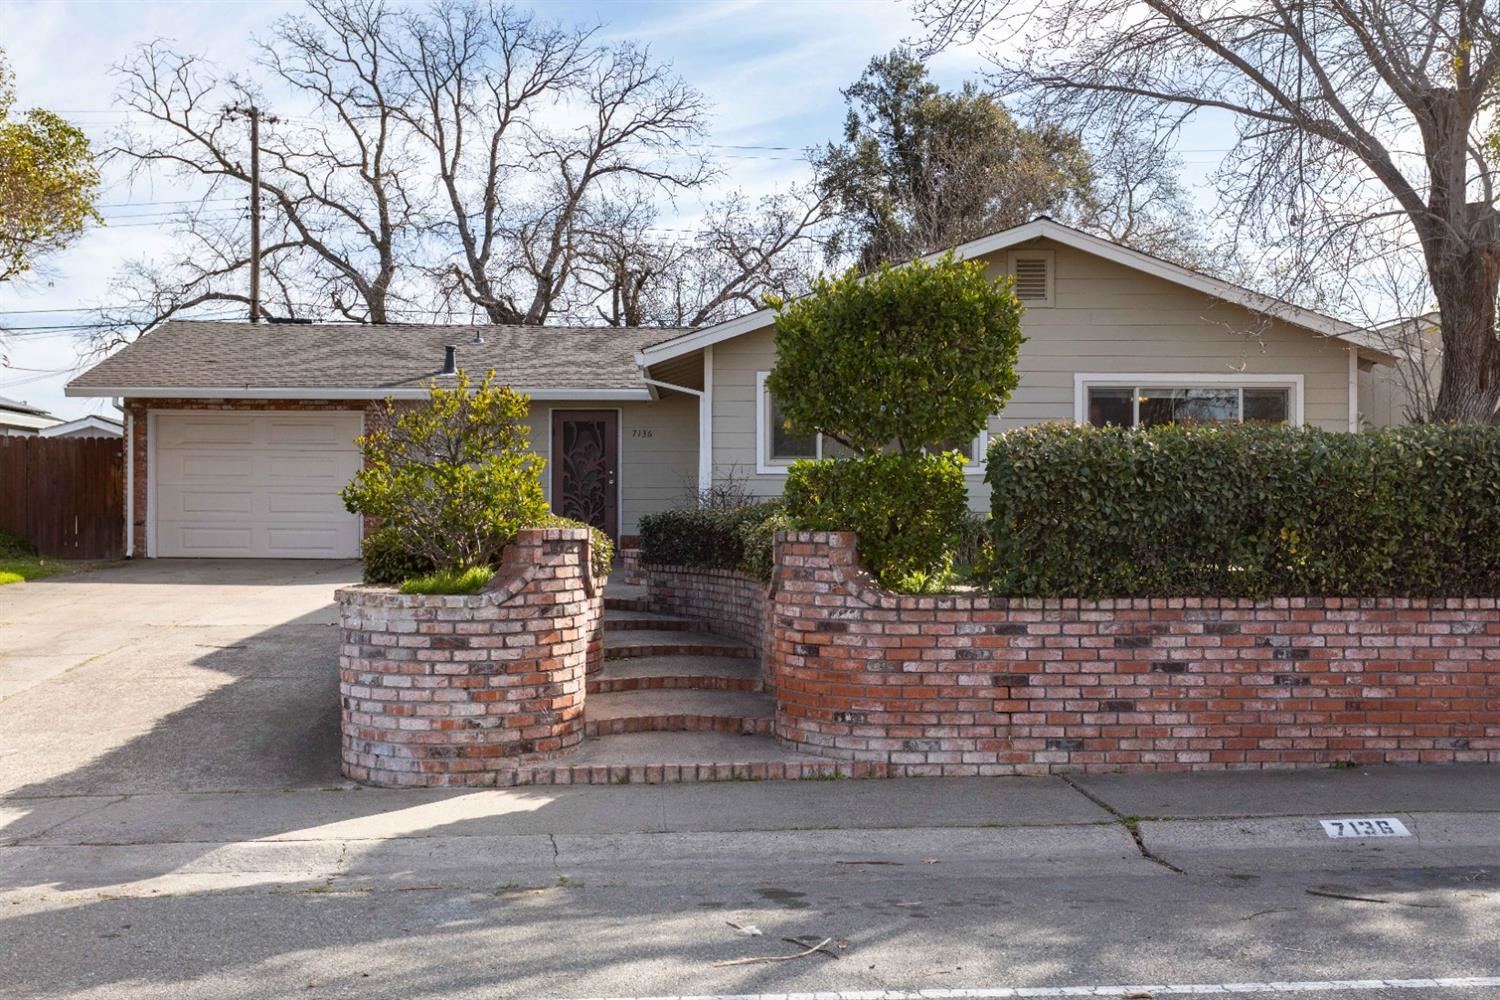 Photo of 7136 Carriage Drive, Citrus Heights, CA 95621 (MLS # 221014377)